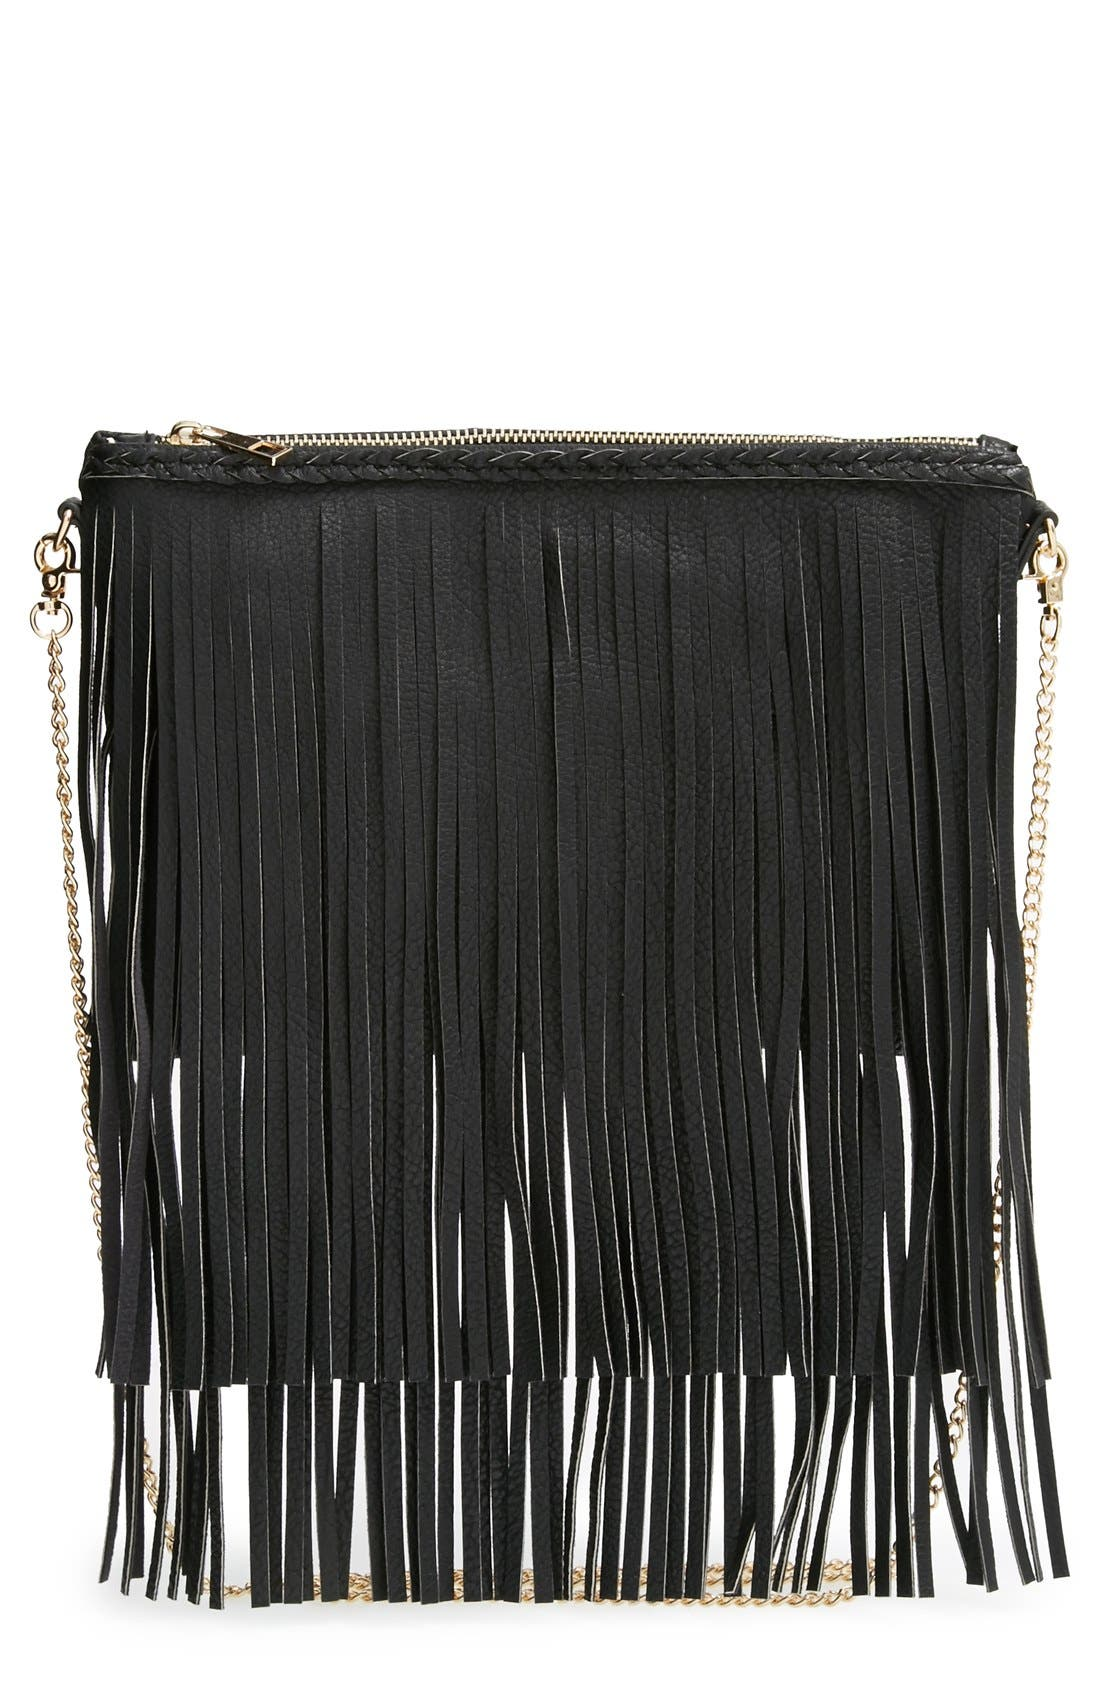 'Rose' Fringe Faux Leather Convertible Crossbody Bag,                             Main thumbnail 1, color,                             001